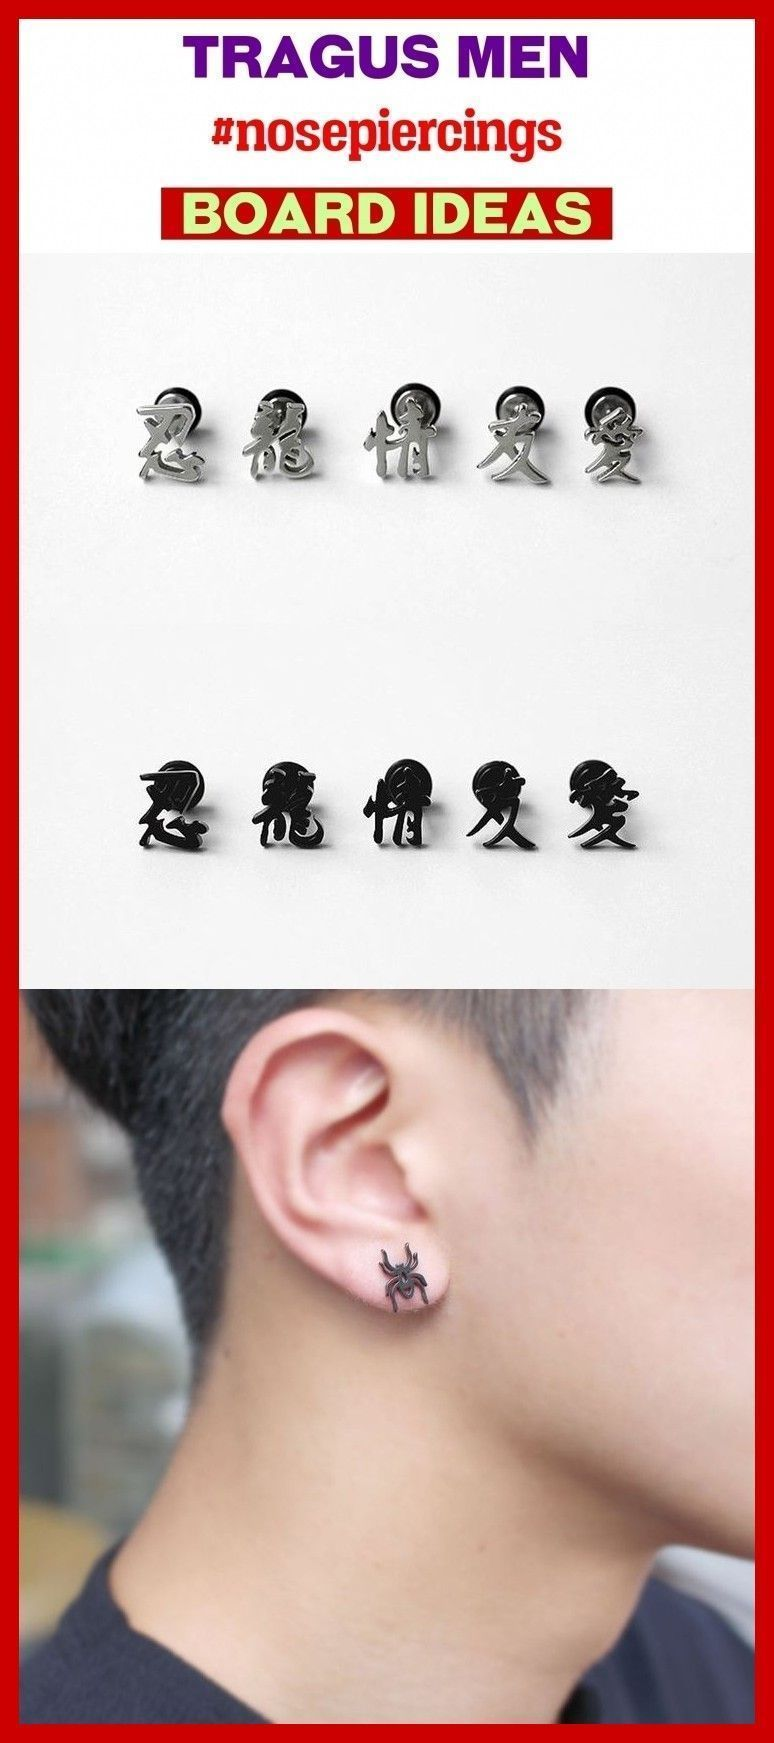 Body painting tragus hombre, tragus arete, tragus piercing wome